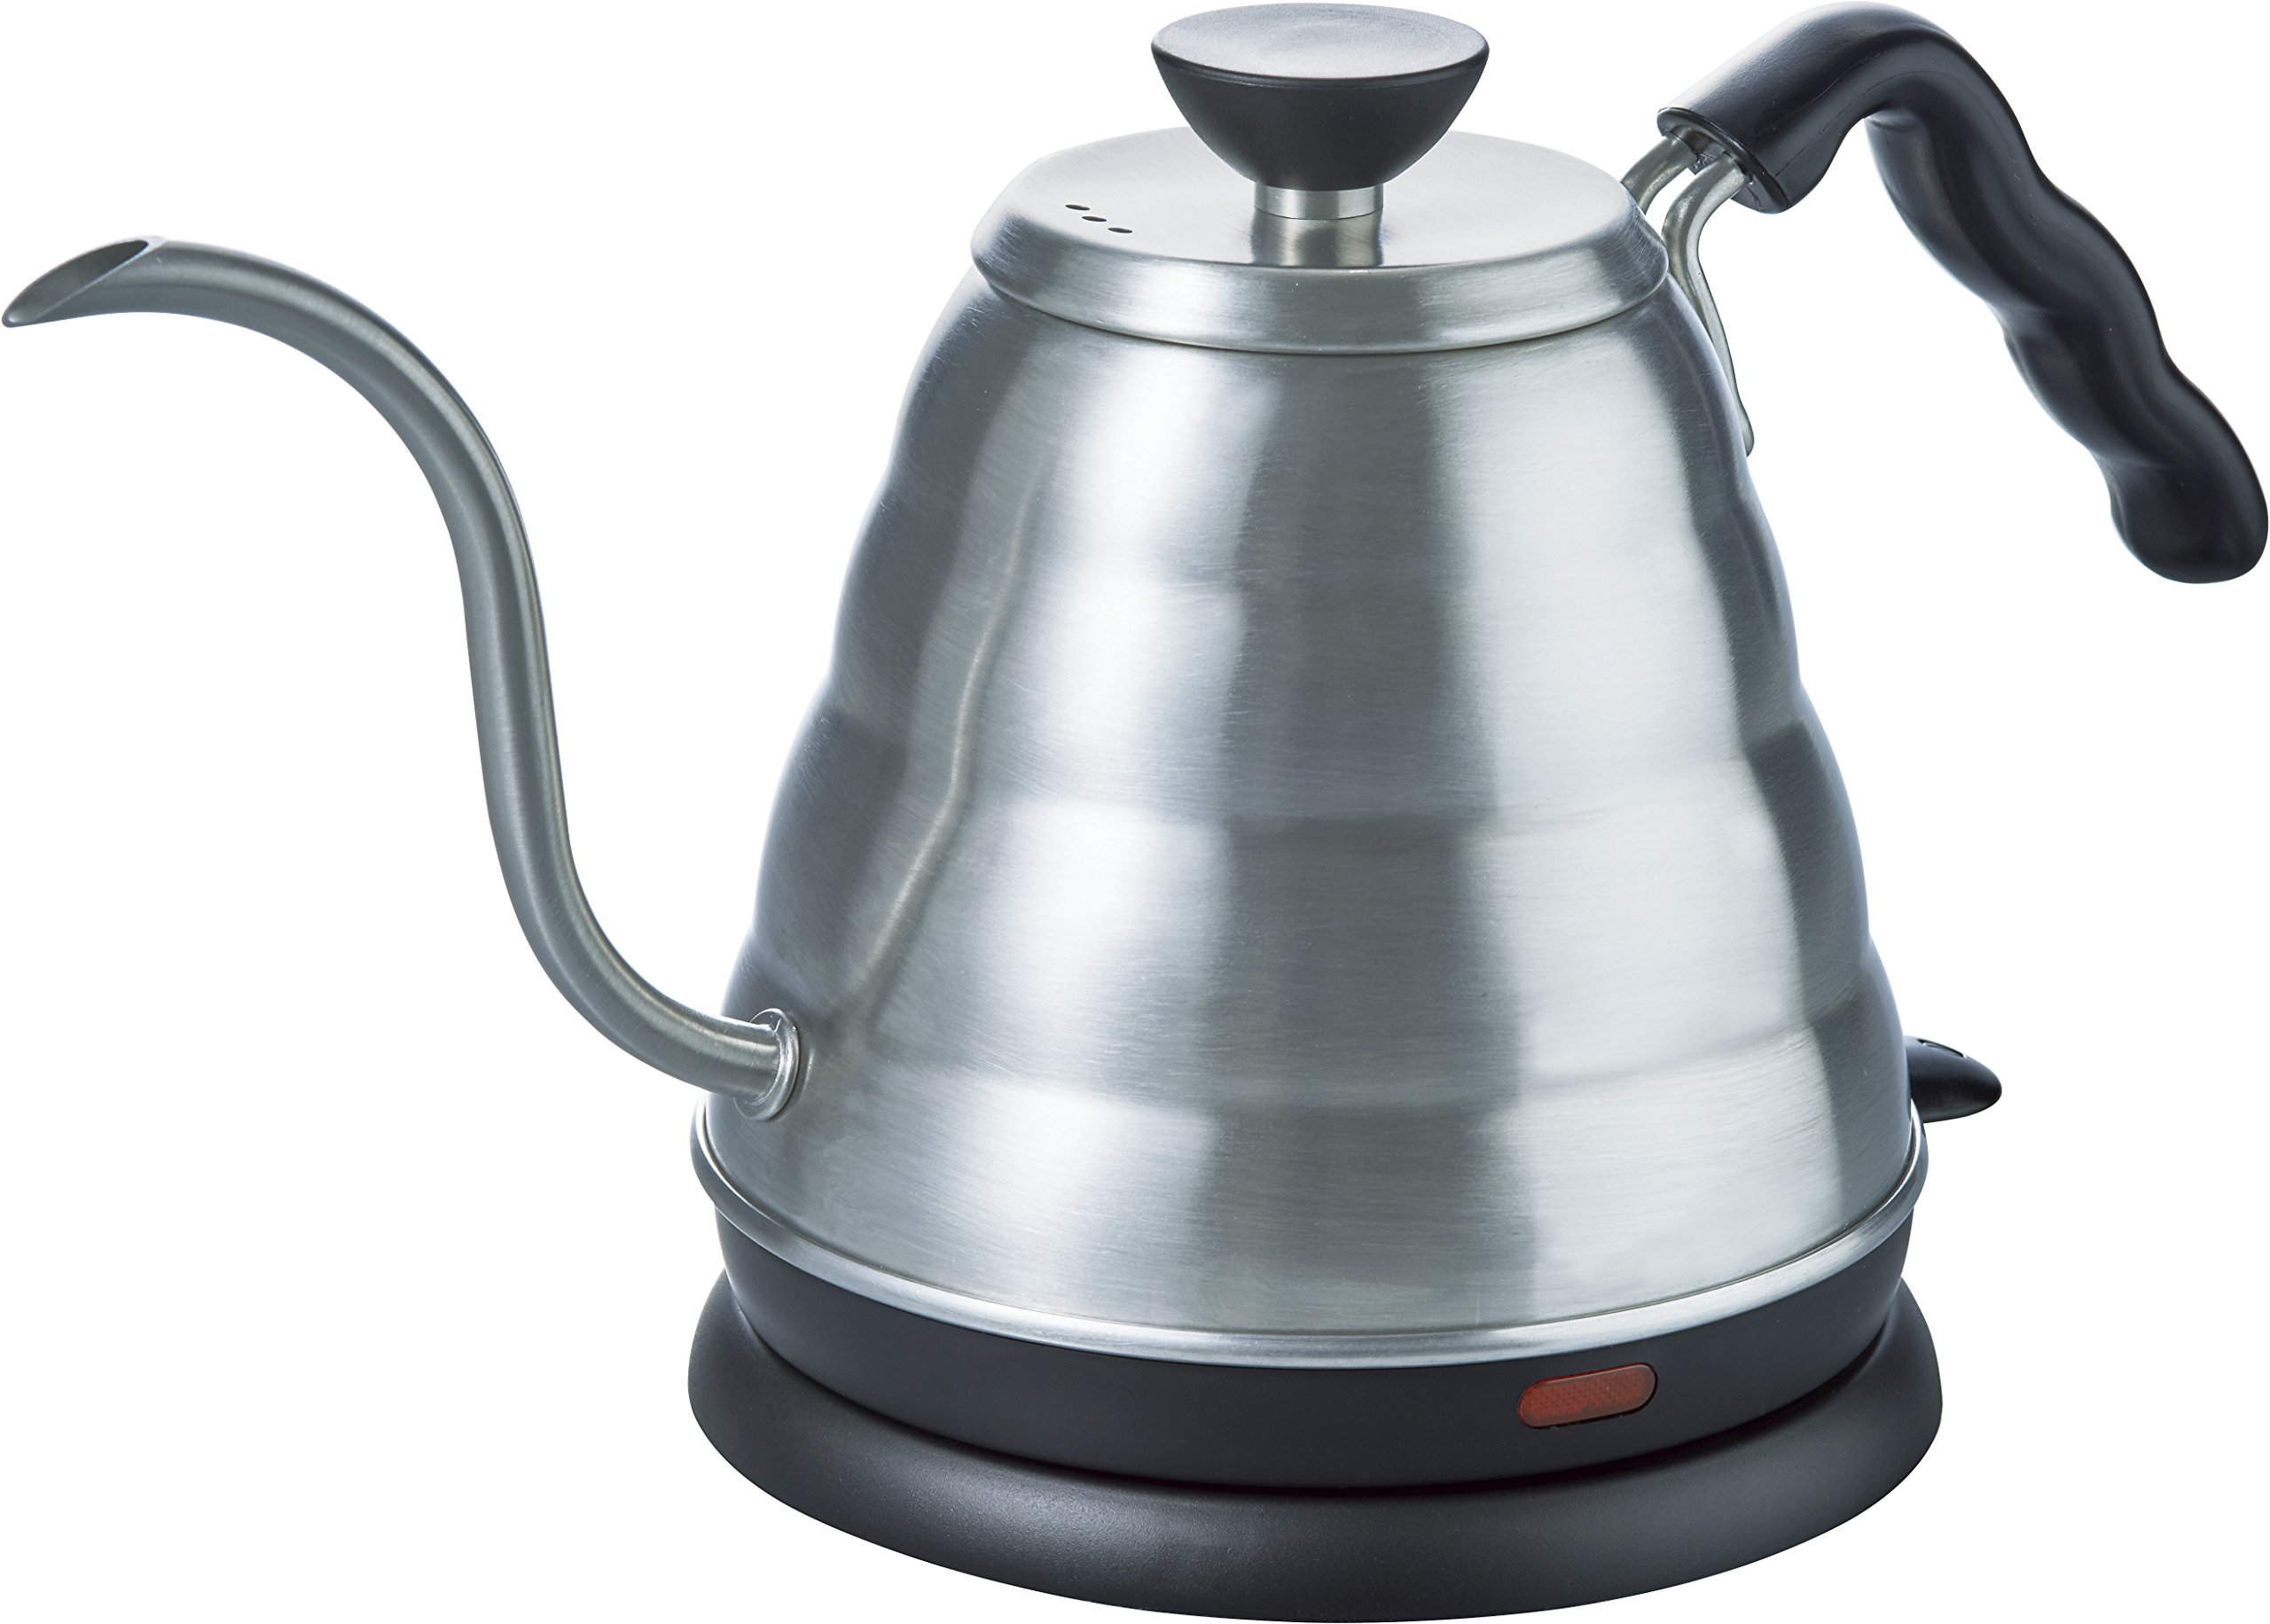 Hario V60 Buono Stainless Steel Electric Drip Coffee Kettle, 0.8L (800ml)